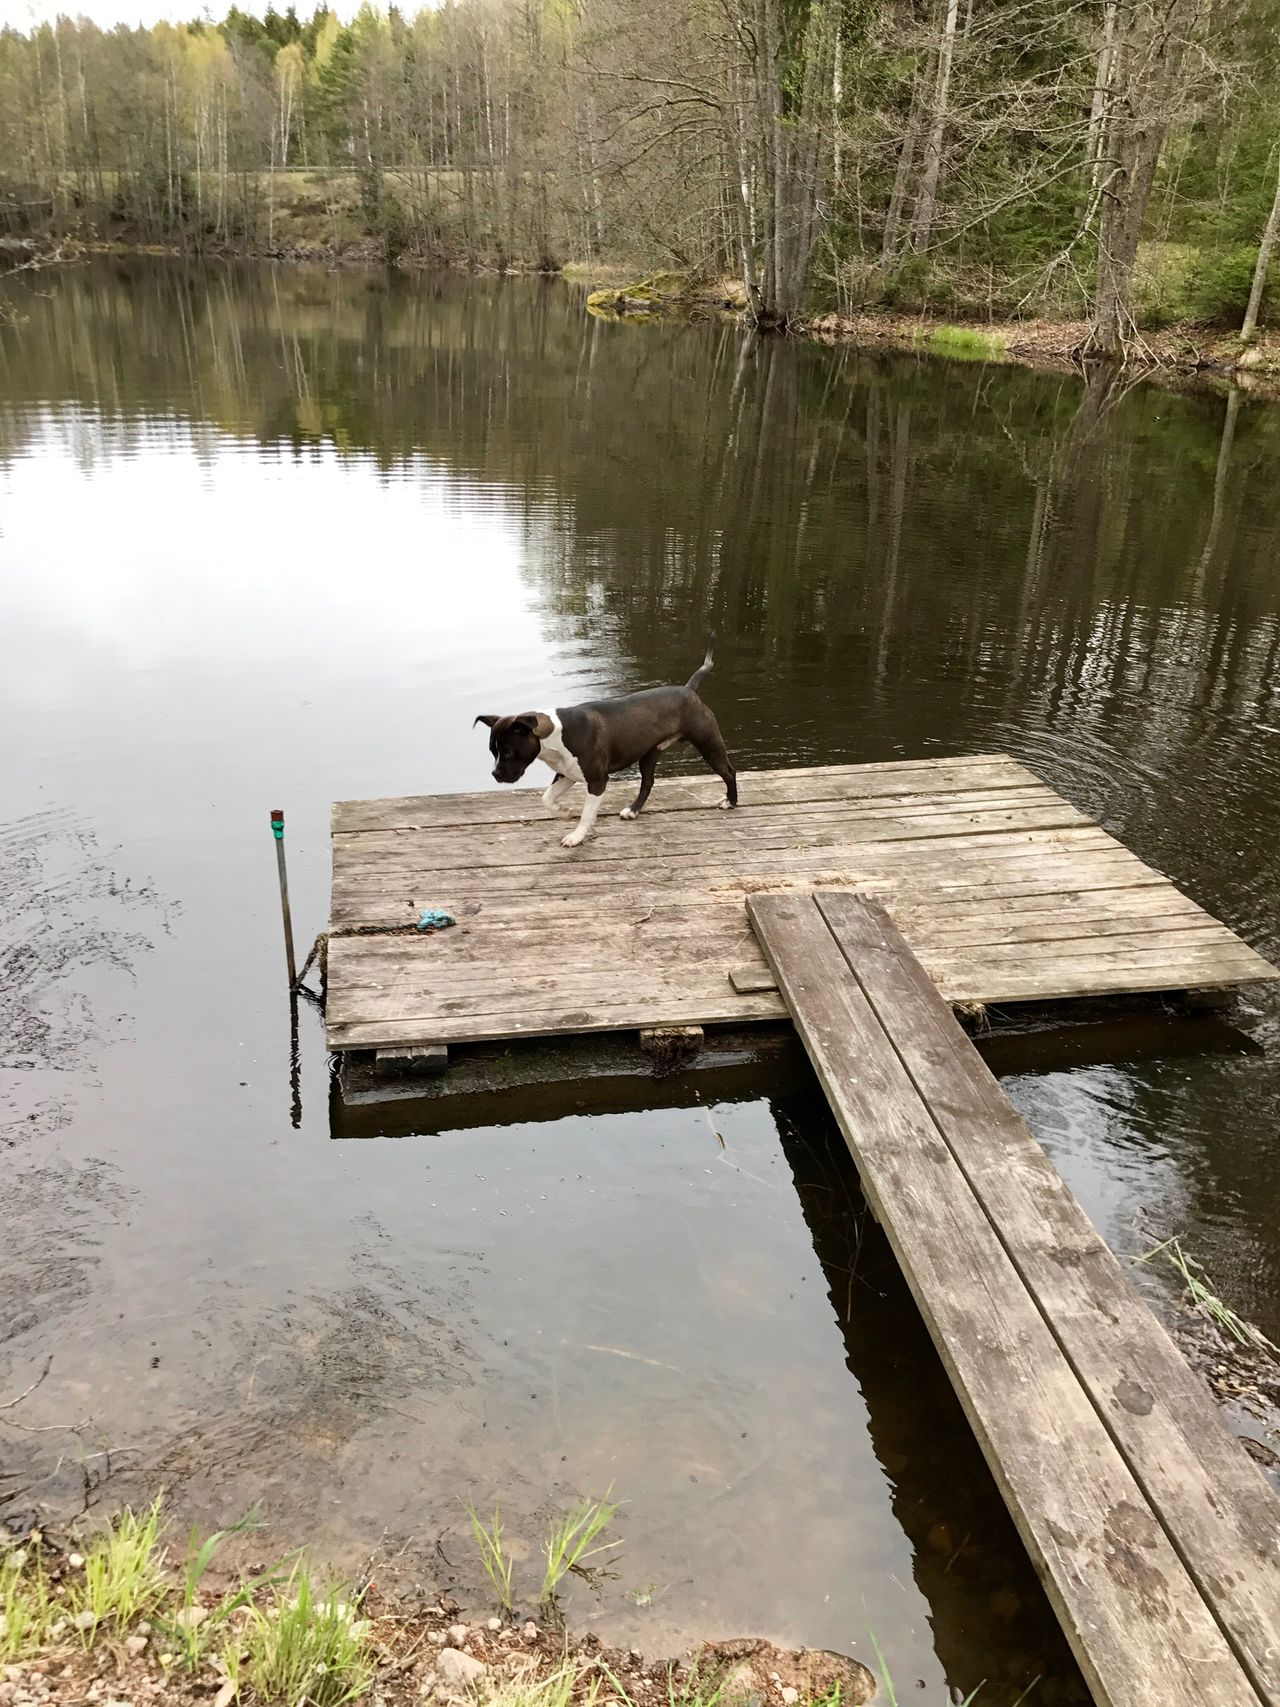 Water Lake Animal Themes One Animal Reflection Day Wood - Material Nature Outdoors Mammal Animals In The Wild No People Domestic Animals Tree Bird Beauty In Nature